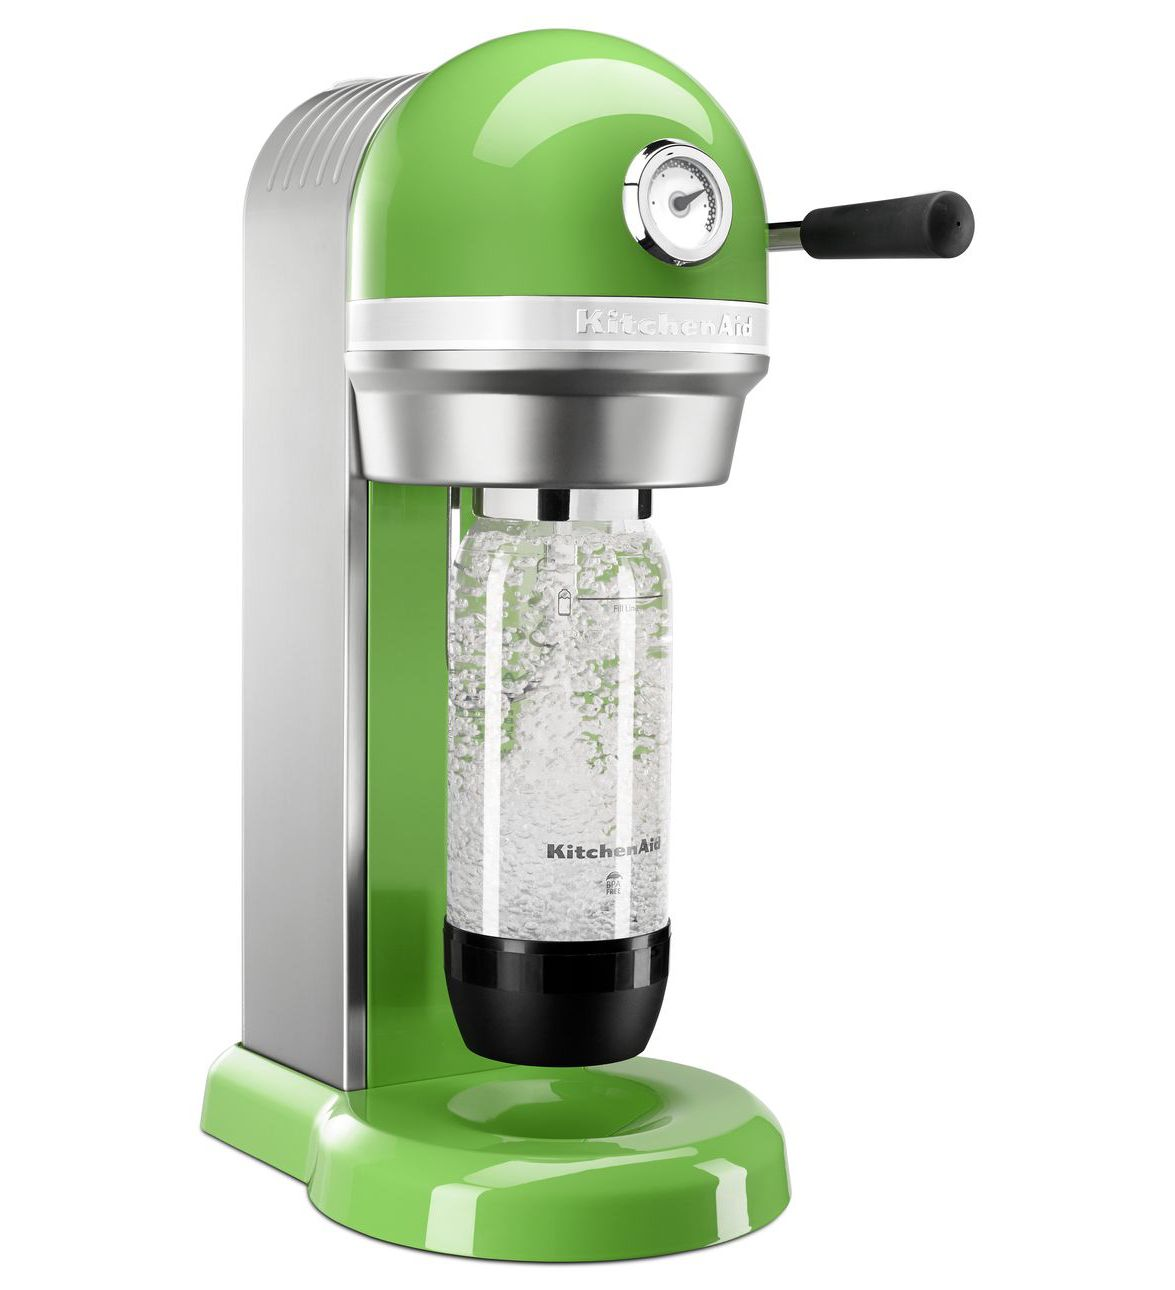 Sodastream Instructions For Use